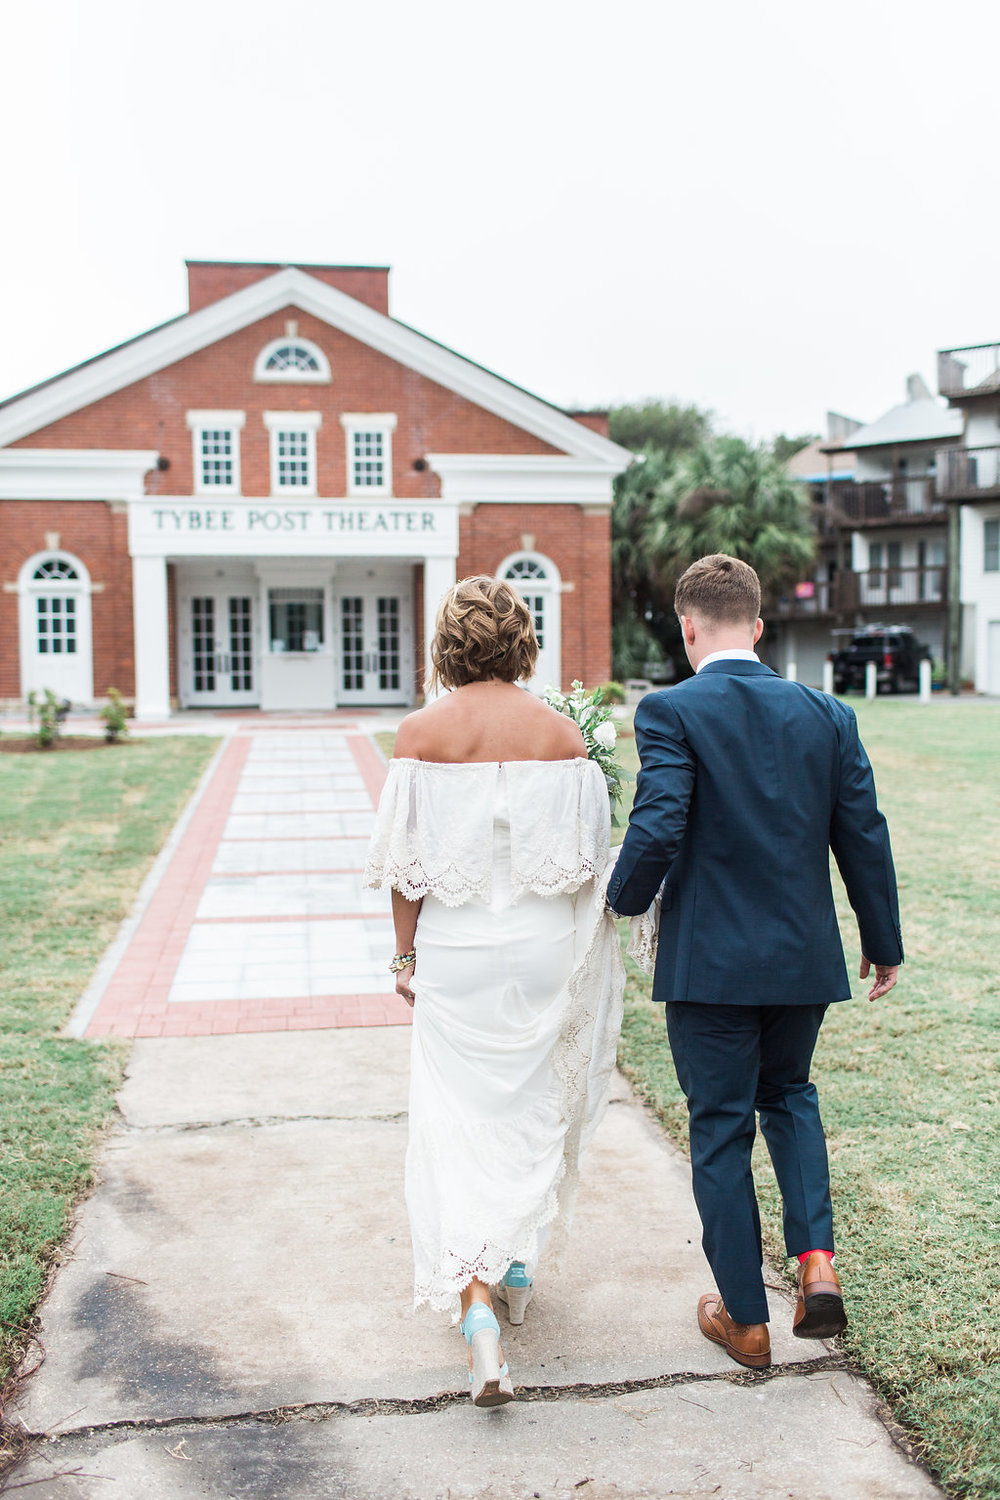 stacey-and-tj-wedding-apartment-b-photography-ivory-and-beau-bridal-boutique-savannah-wedding-dresses-daughters-of-simone-lu-boho-bride-boho-wedding-savannah-boho-wedding-savannah-weddings-savannah-bridal-gowns-savannah-wedding-30.jpg